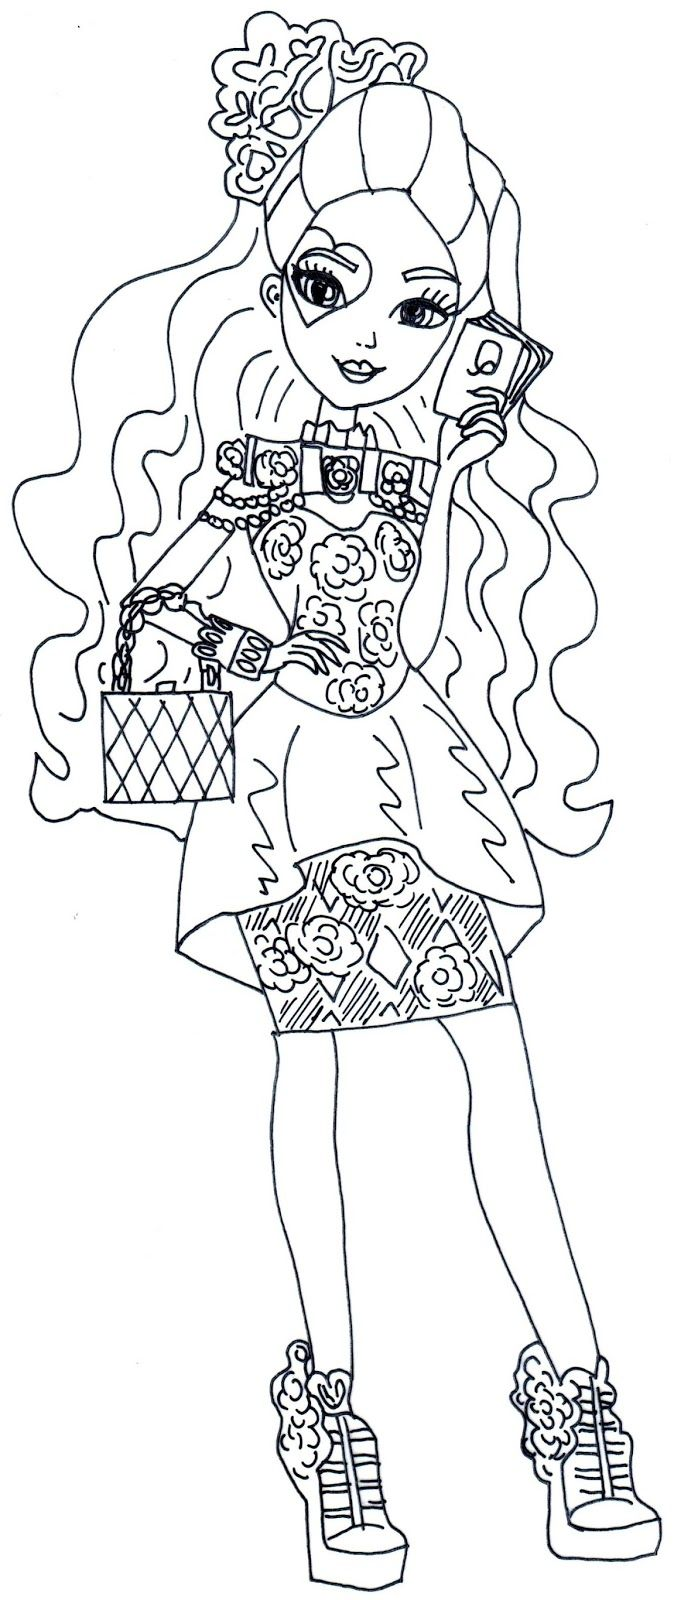 Printable coloring pages ever after high - Free Printable Ever After High Coloring Pages Lizzie Hearts